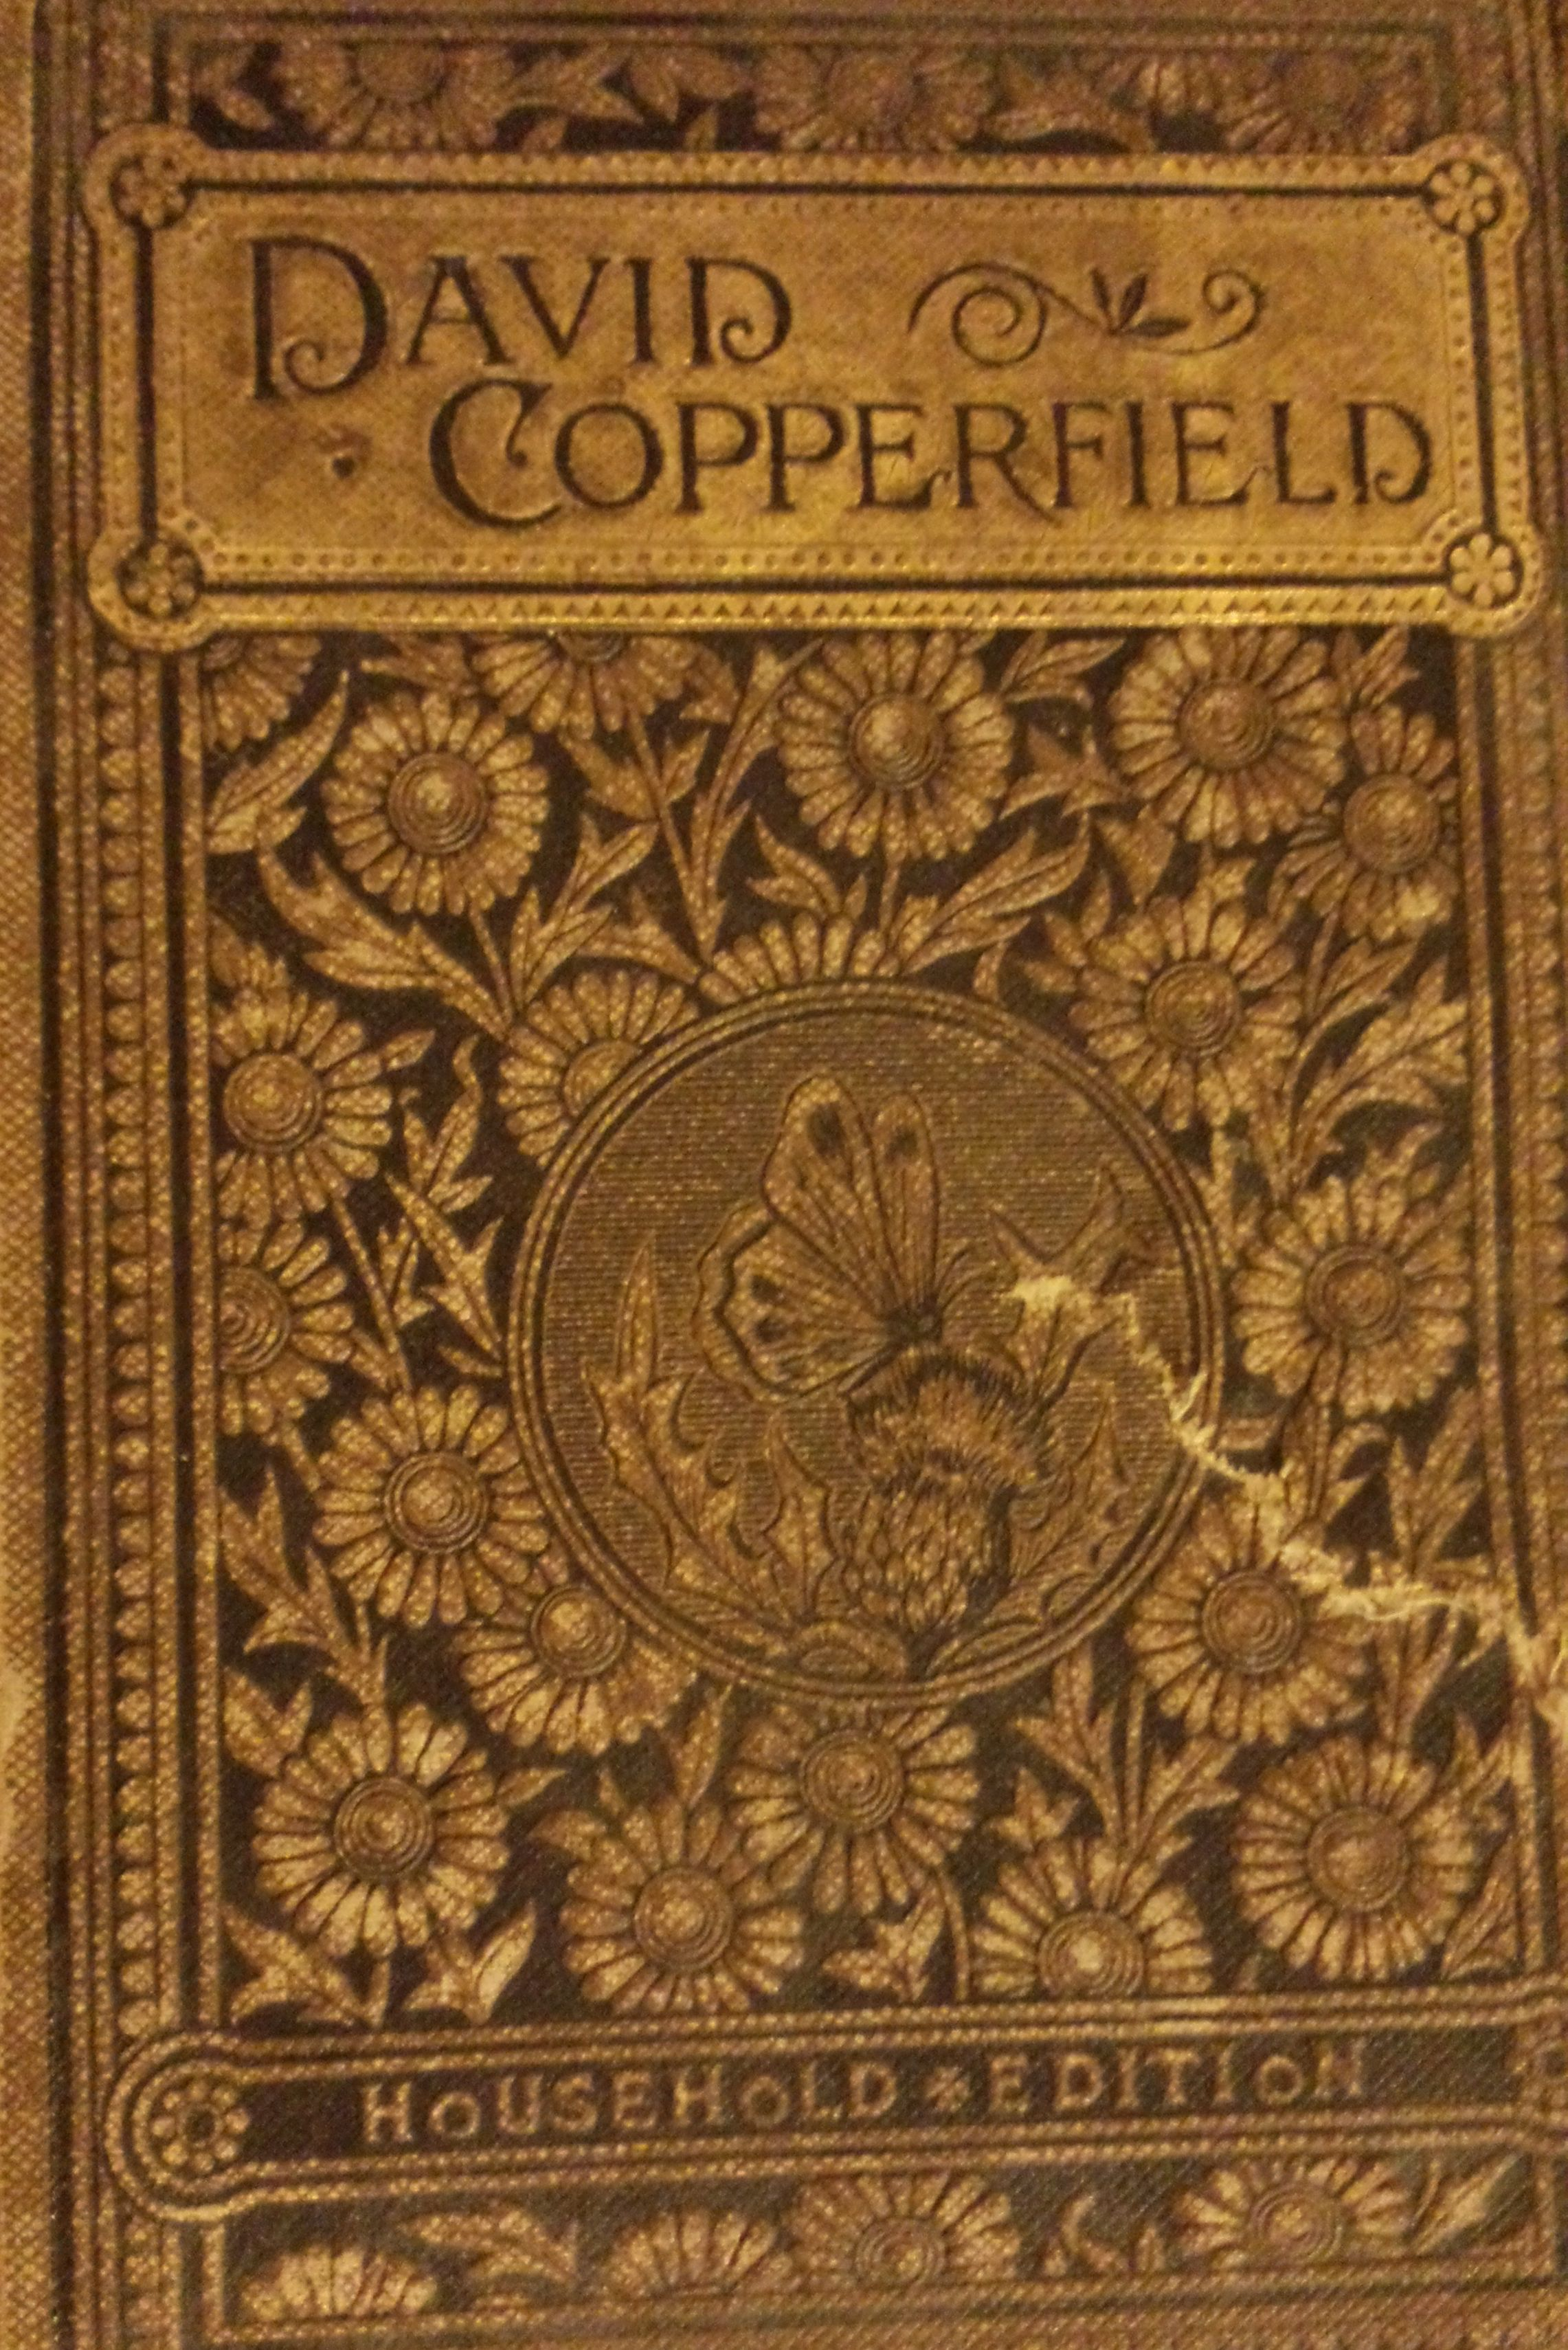 david copperfield by charles dickens essay David copperfield: biography: charles dickens, free study guides and book notes including comprehensive chapter analysis, complete summary analysis, author biography information, character profiles, theme analysis, metaphor analysis, and top ten quotes on classic literature.